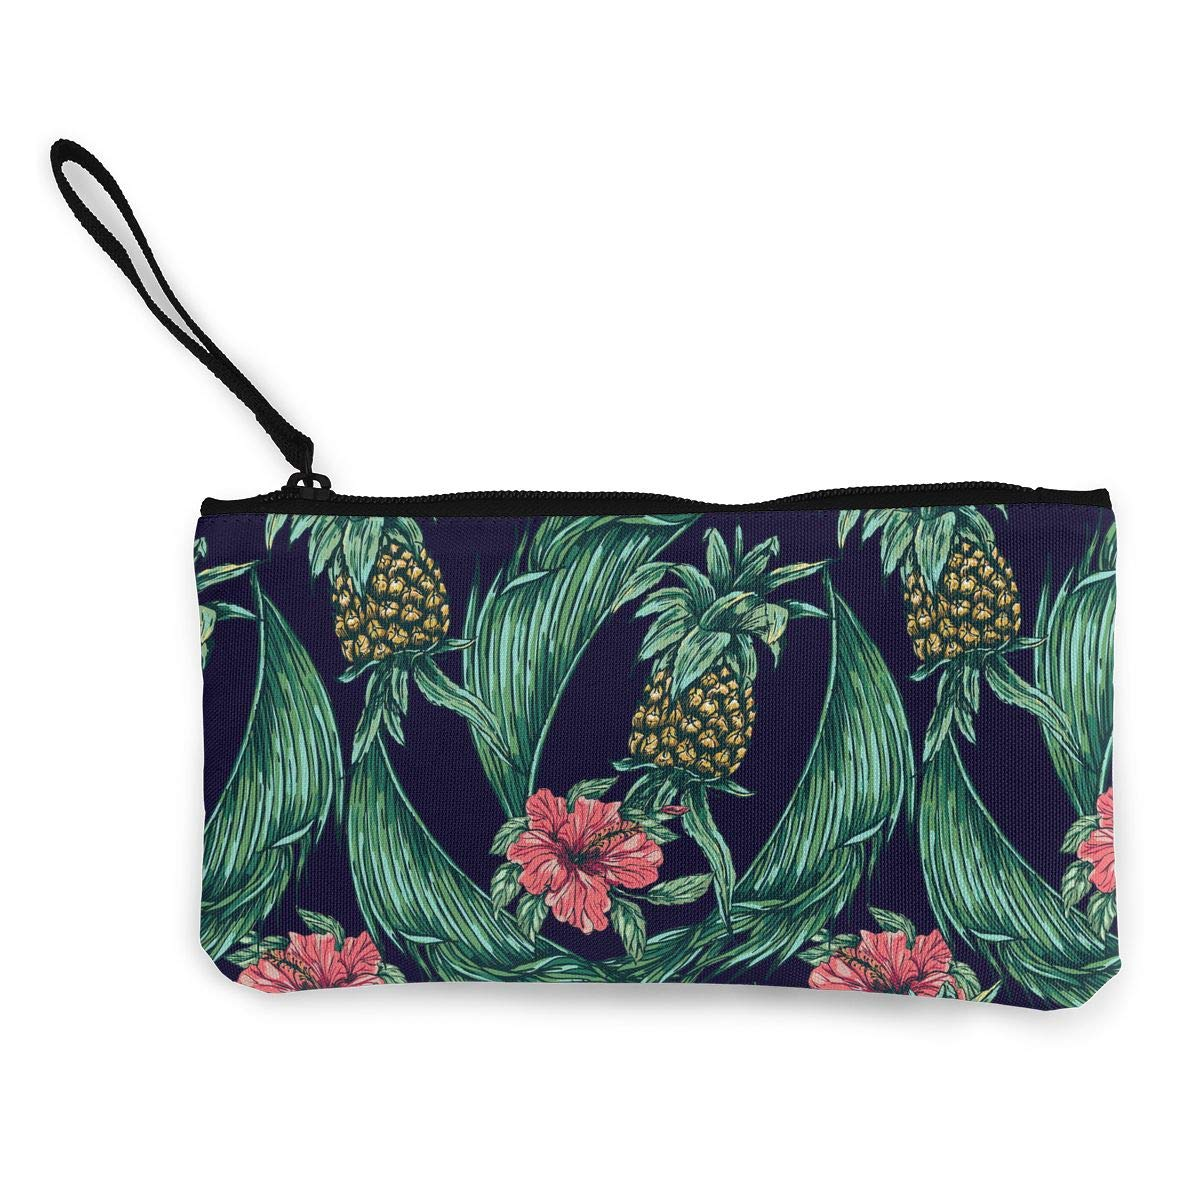 Pineapple Flowers Pattern Canvas Makeup Bag with Zipper for Women Bk55Oi/&/& Womens Fashion Purse